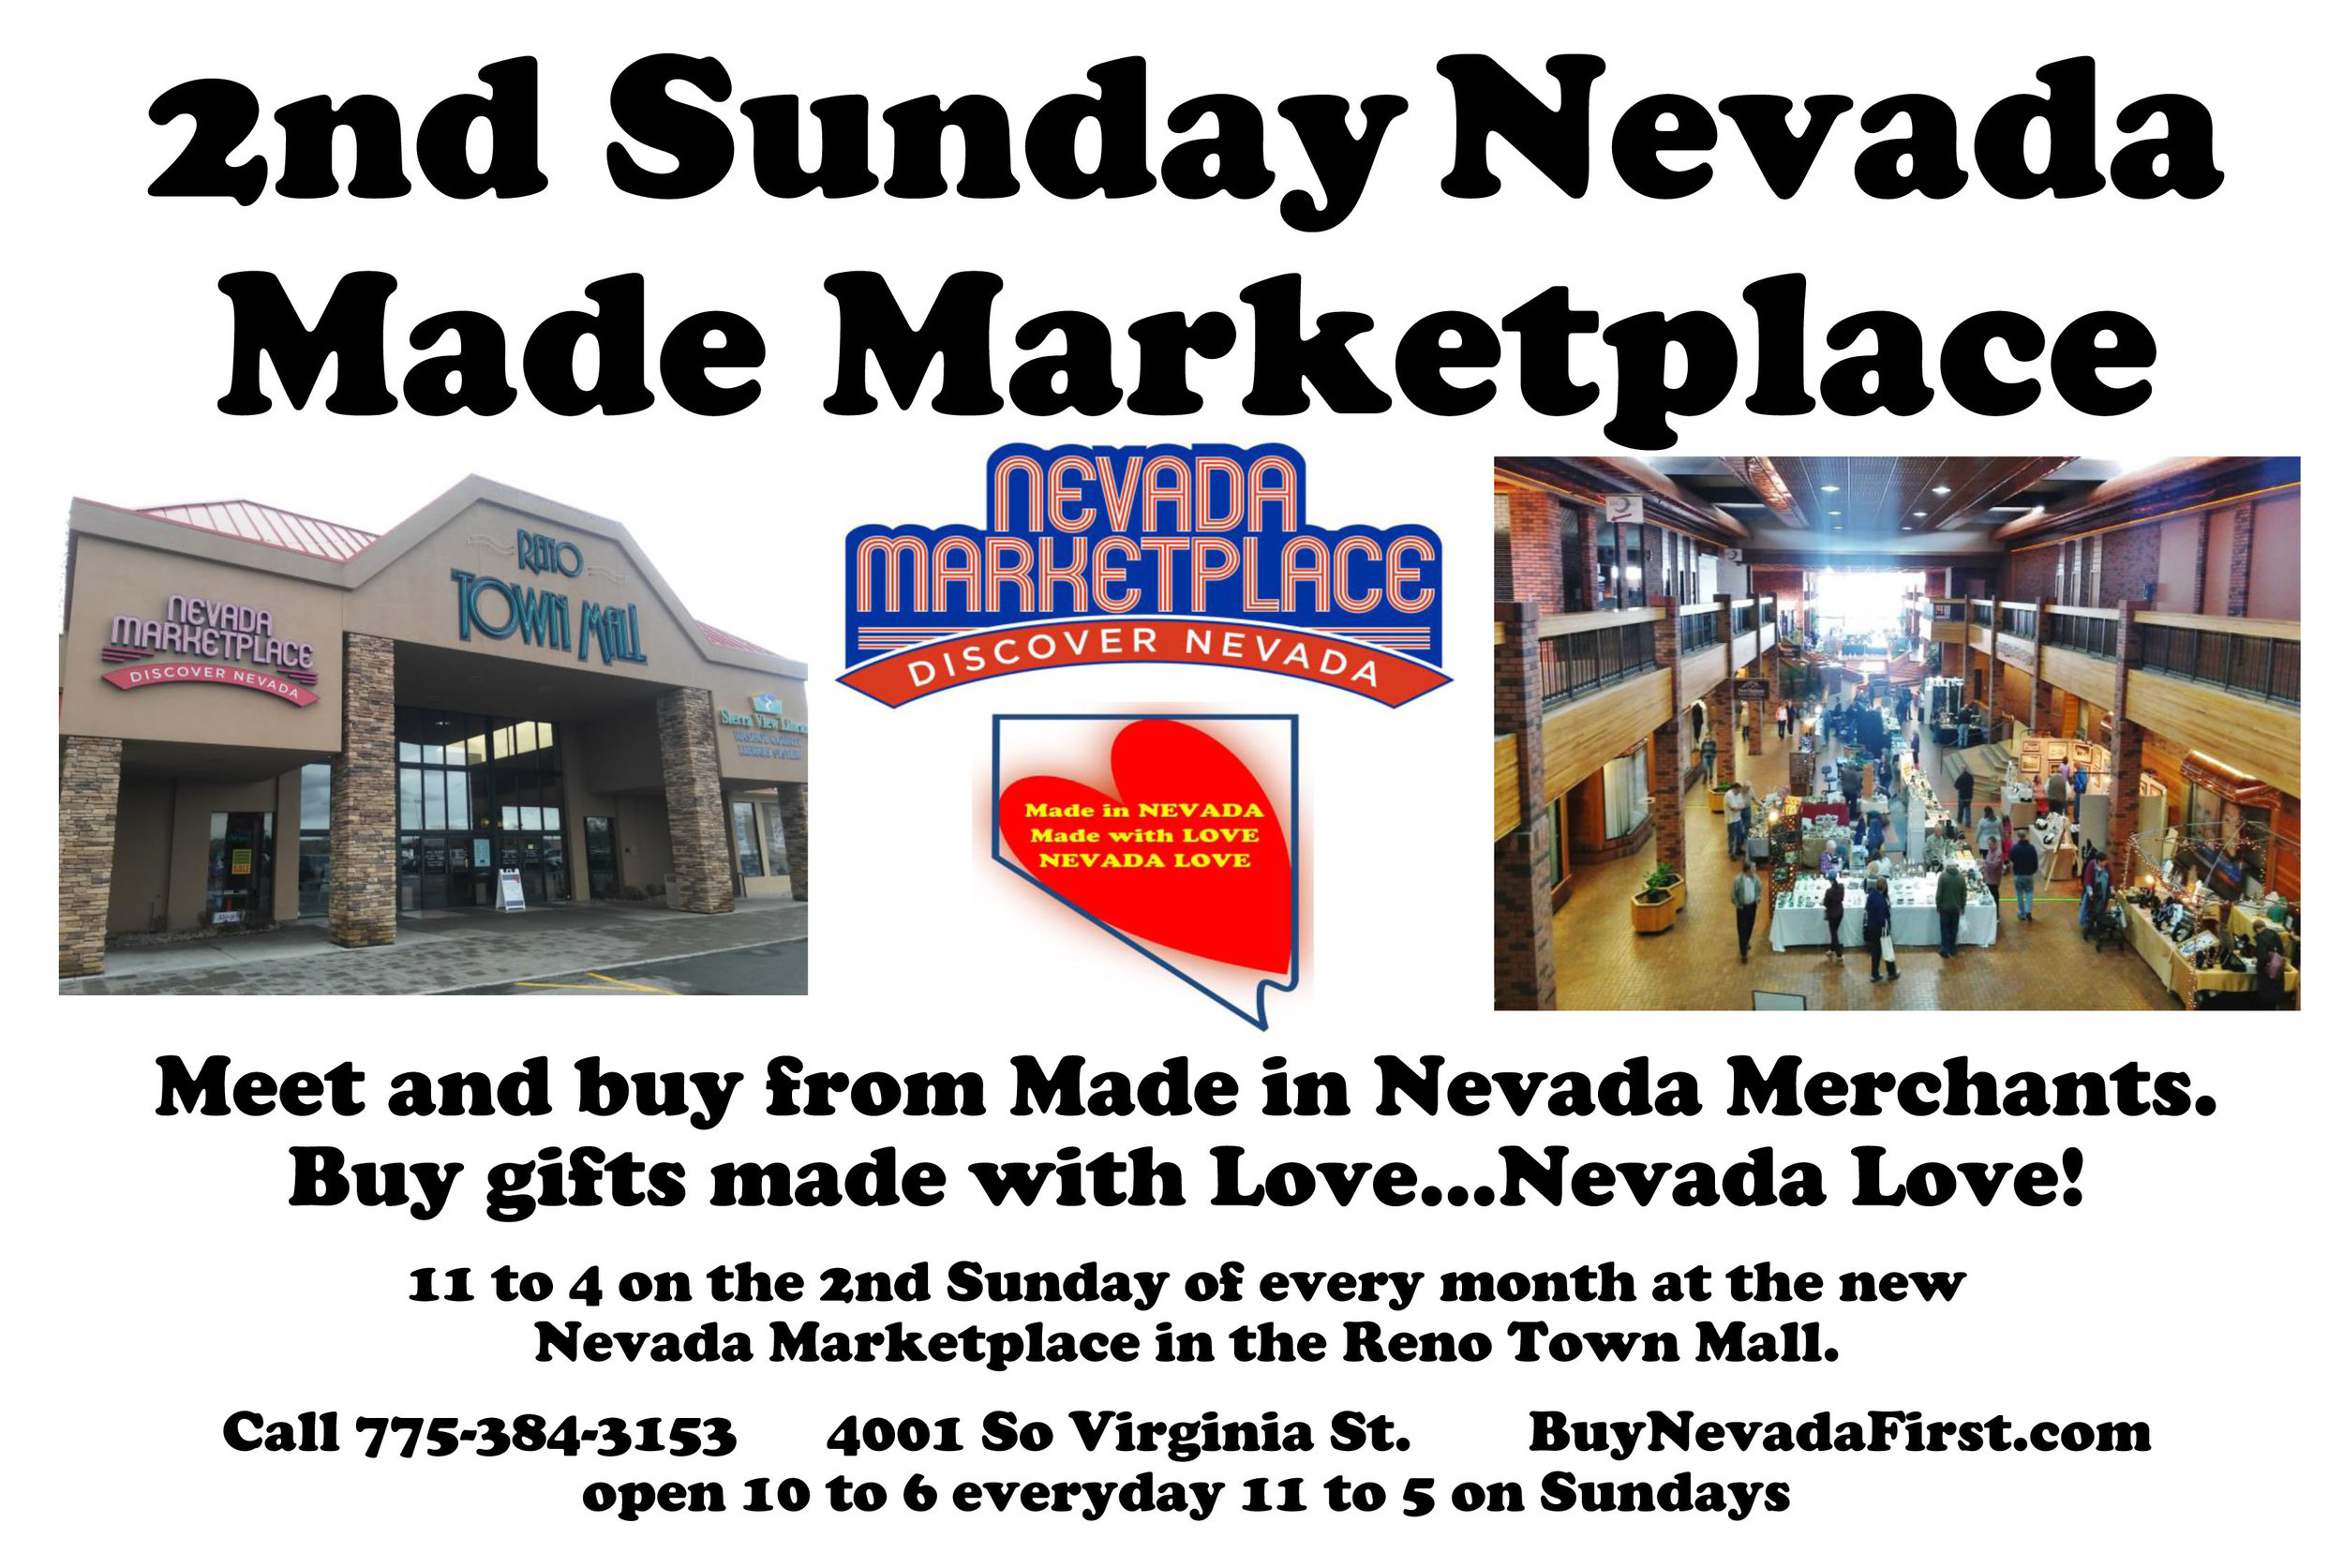 2nd Sunday Nevada Made Marketplace promo[78981].jpg